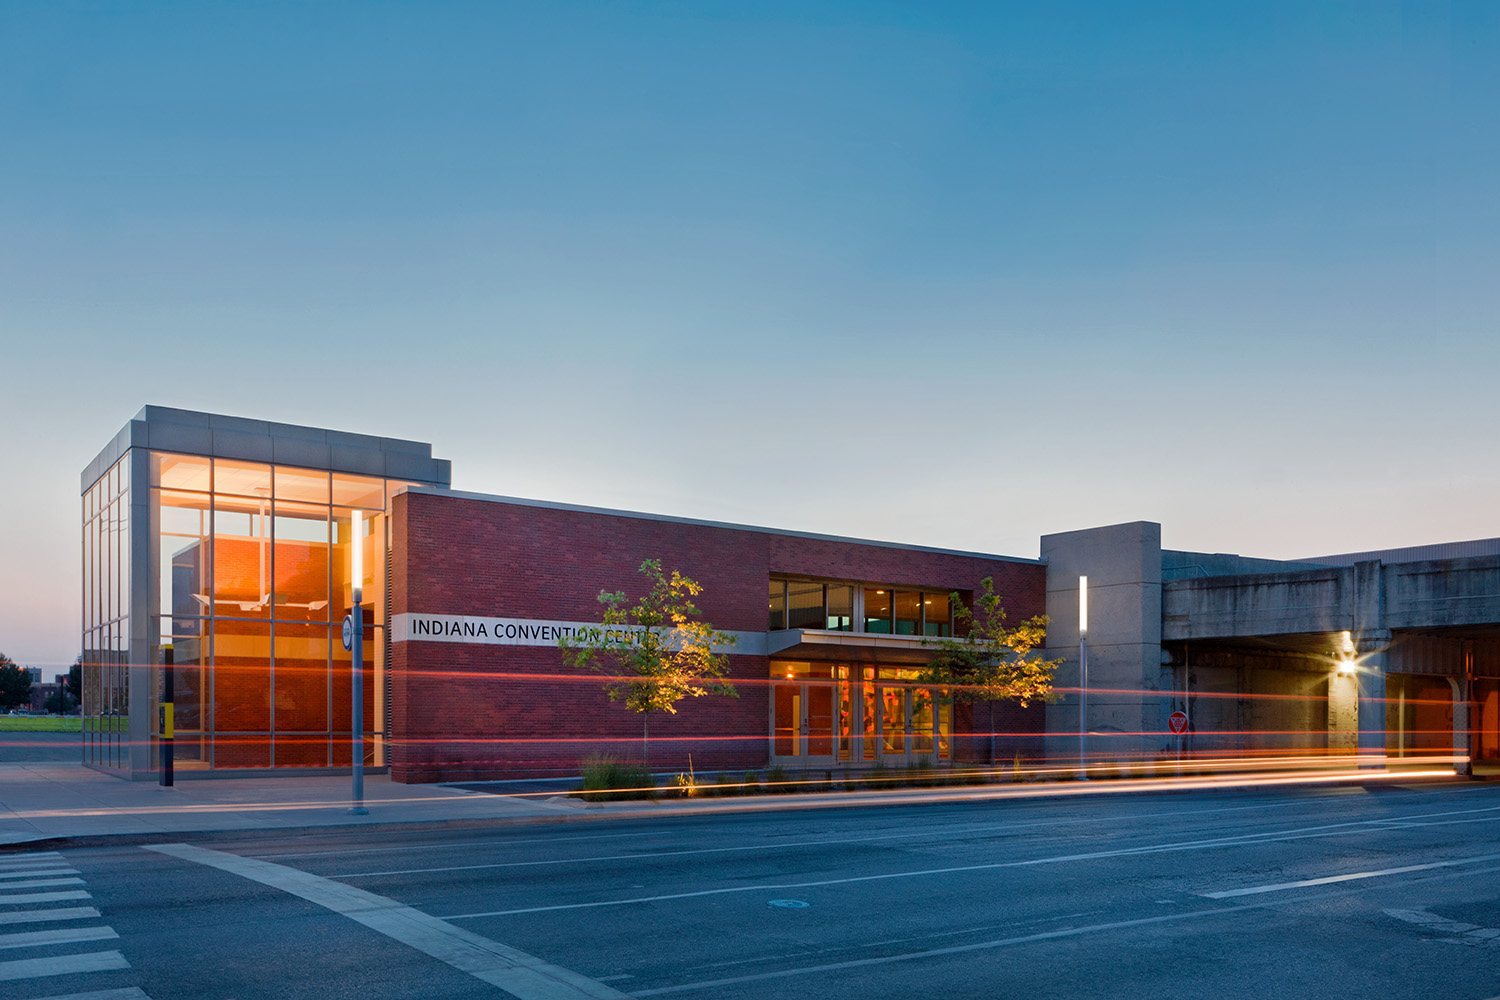 Indiana Convention Center / Indianapolis IN / Ratio Architects